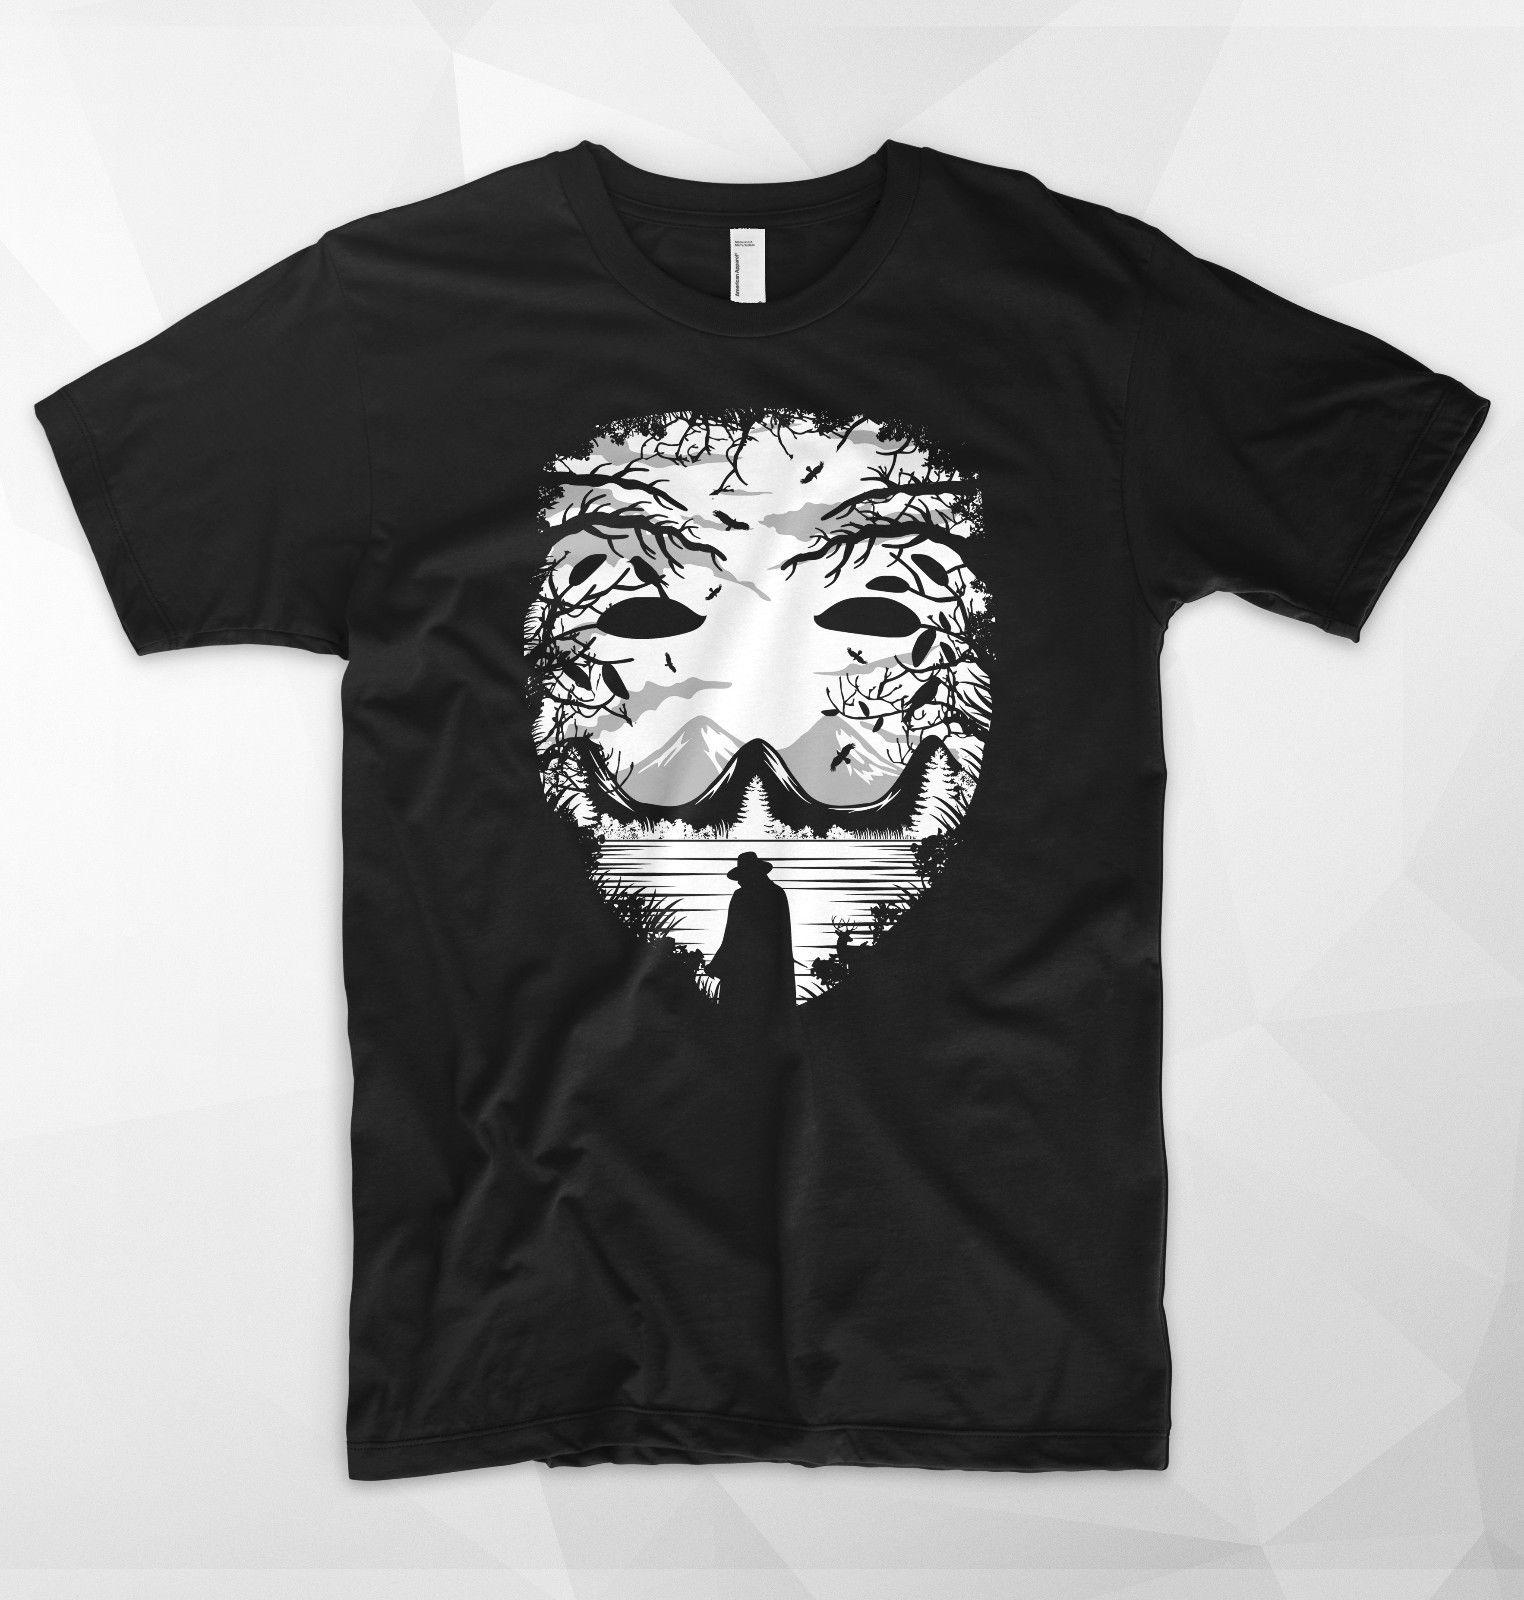 Mask Anonymous T Shirt Top V For Vendetta Guy Fawkes Mountains Temple Nature Summer 100% Cotton Short Sleeve Tops Tee Free shipping tees